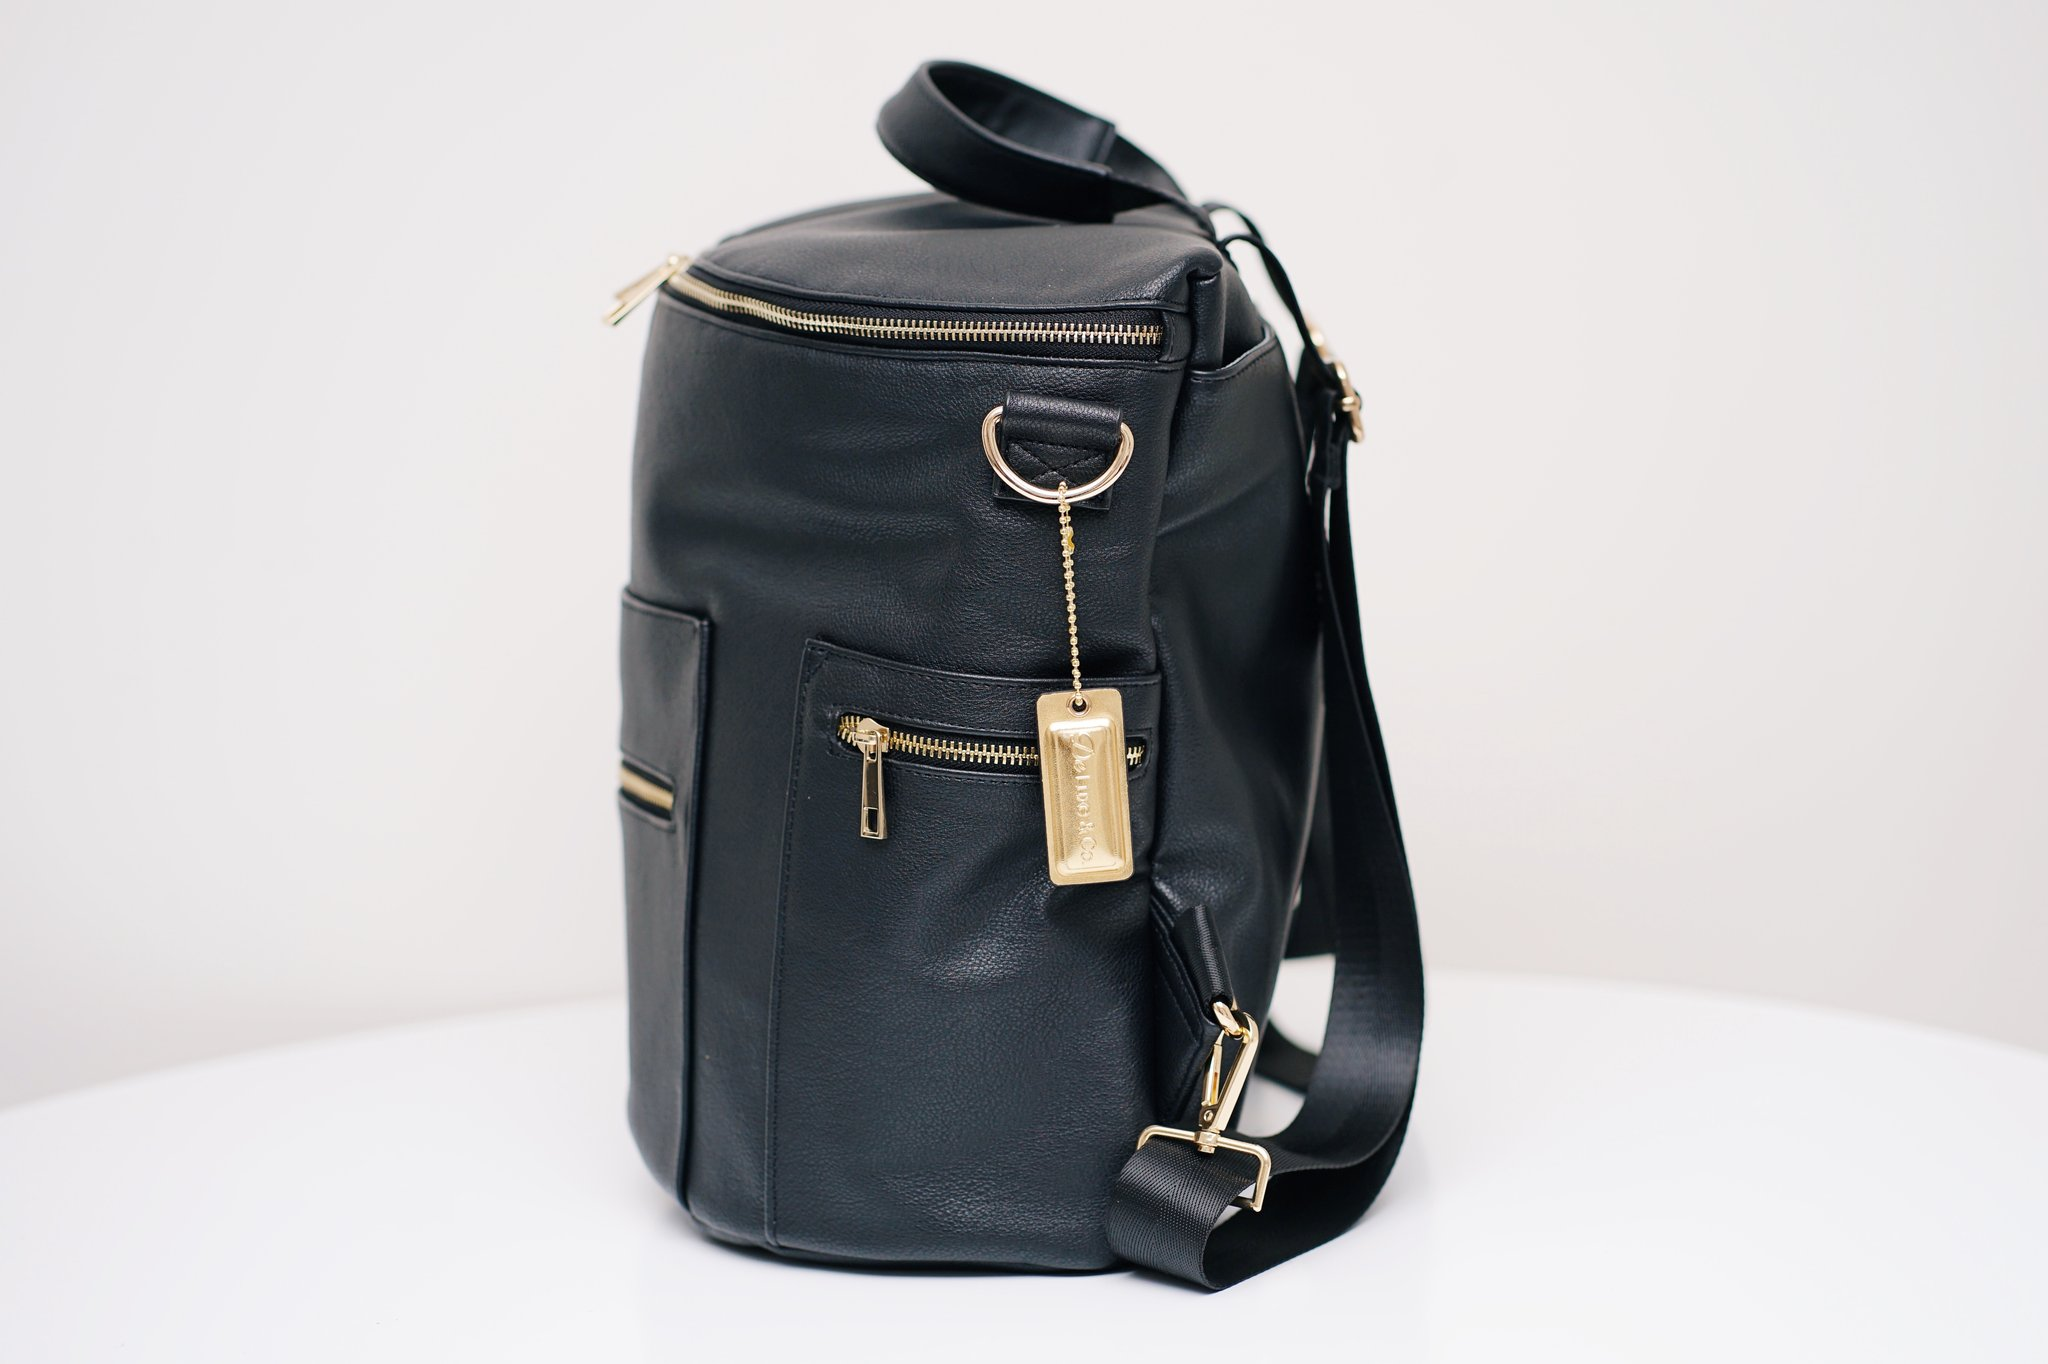 De Luxe and Co Diaper Anytime Backpack - Vegan Leather Black